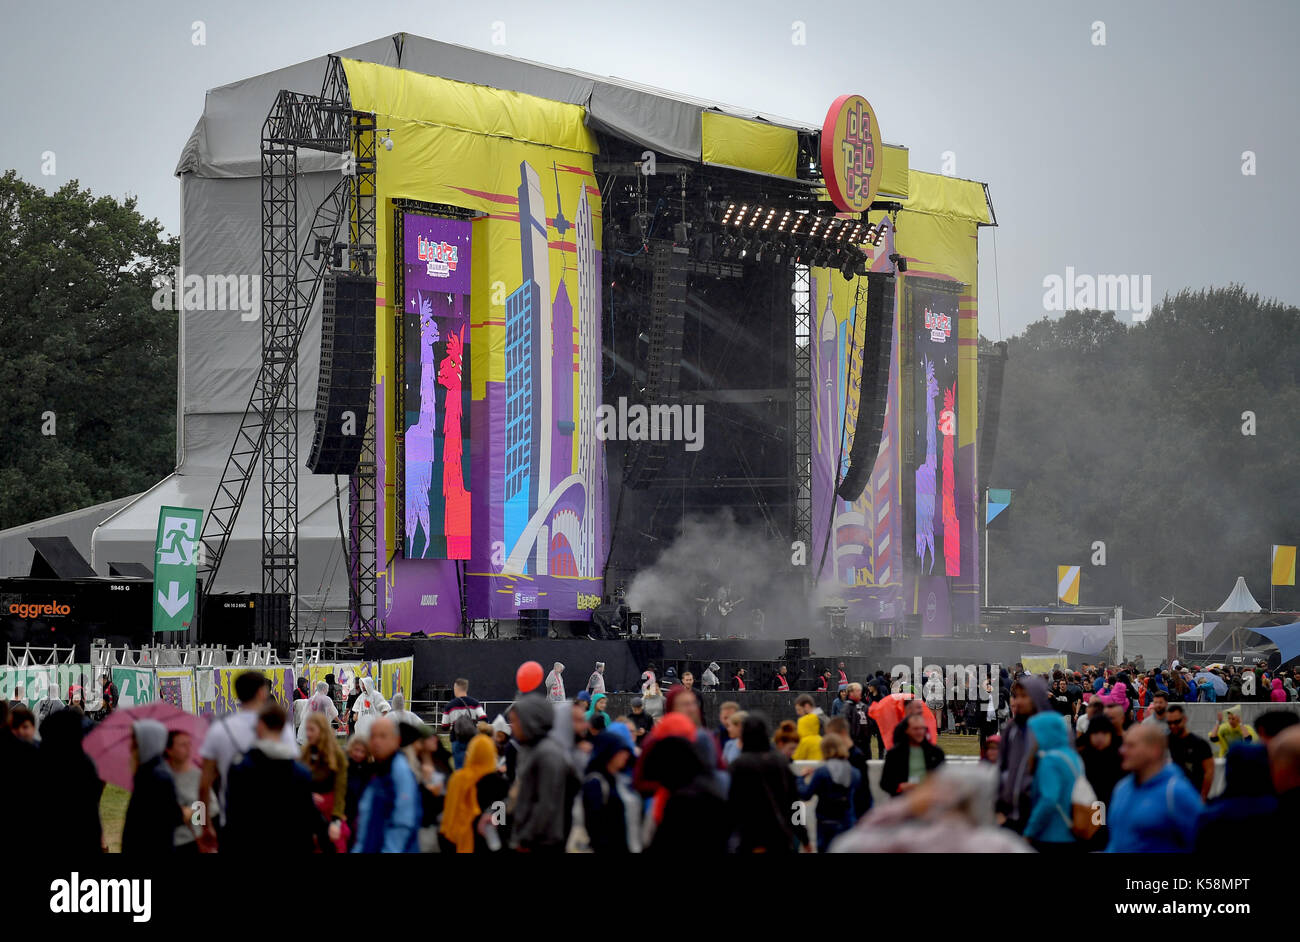 Hoppegarten, Germany. 9th Sep, 2017. A crowd gathers in front of a stage at the Lollapalooza festival in Hoppegarten, Germany, 9 September 2017. The music festival is held over two days on the 9 and 10 September. Photo: Britta Pedersen/dpa/Alamy Live News - Stock Image